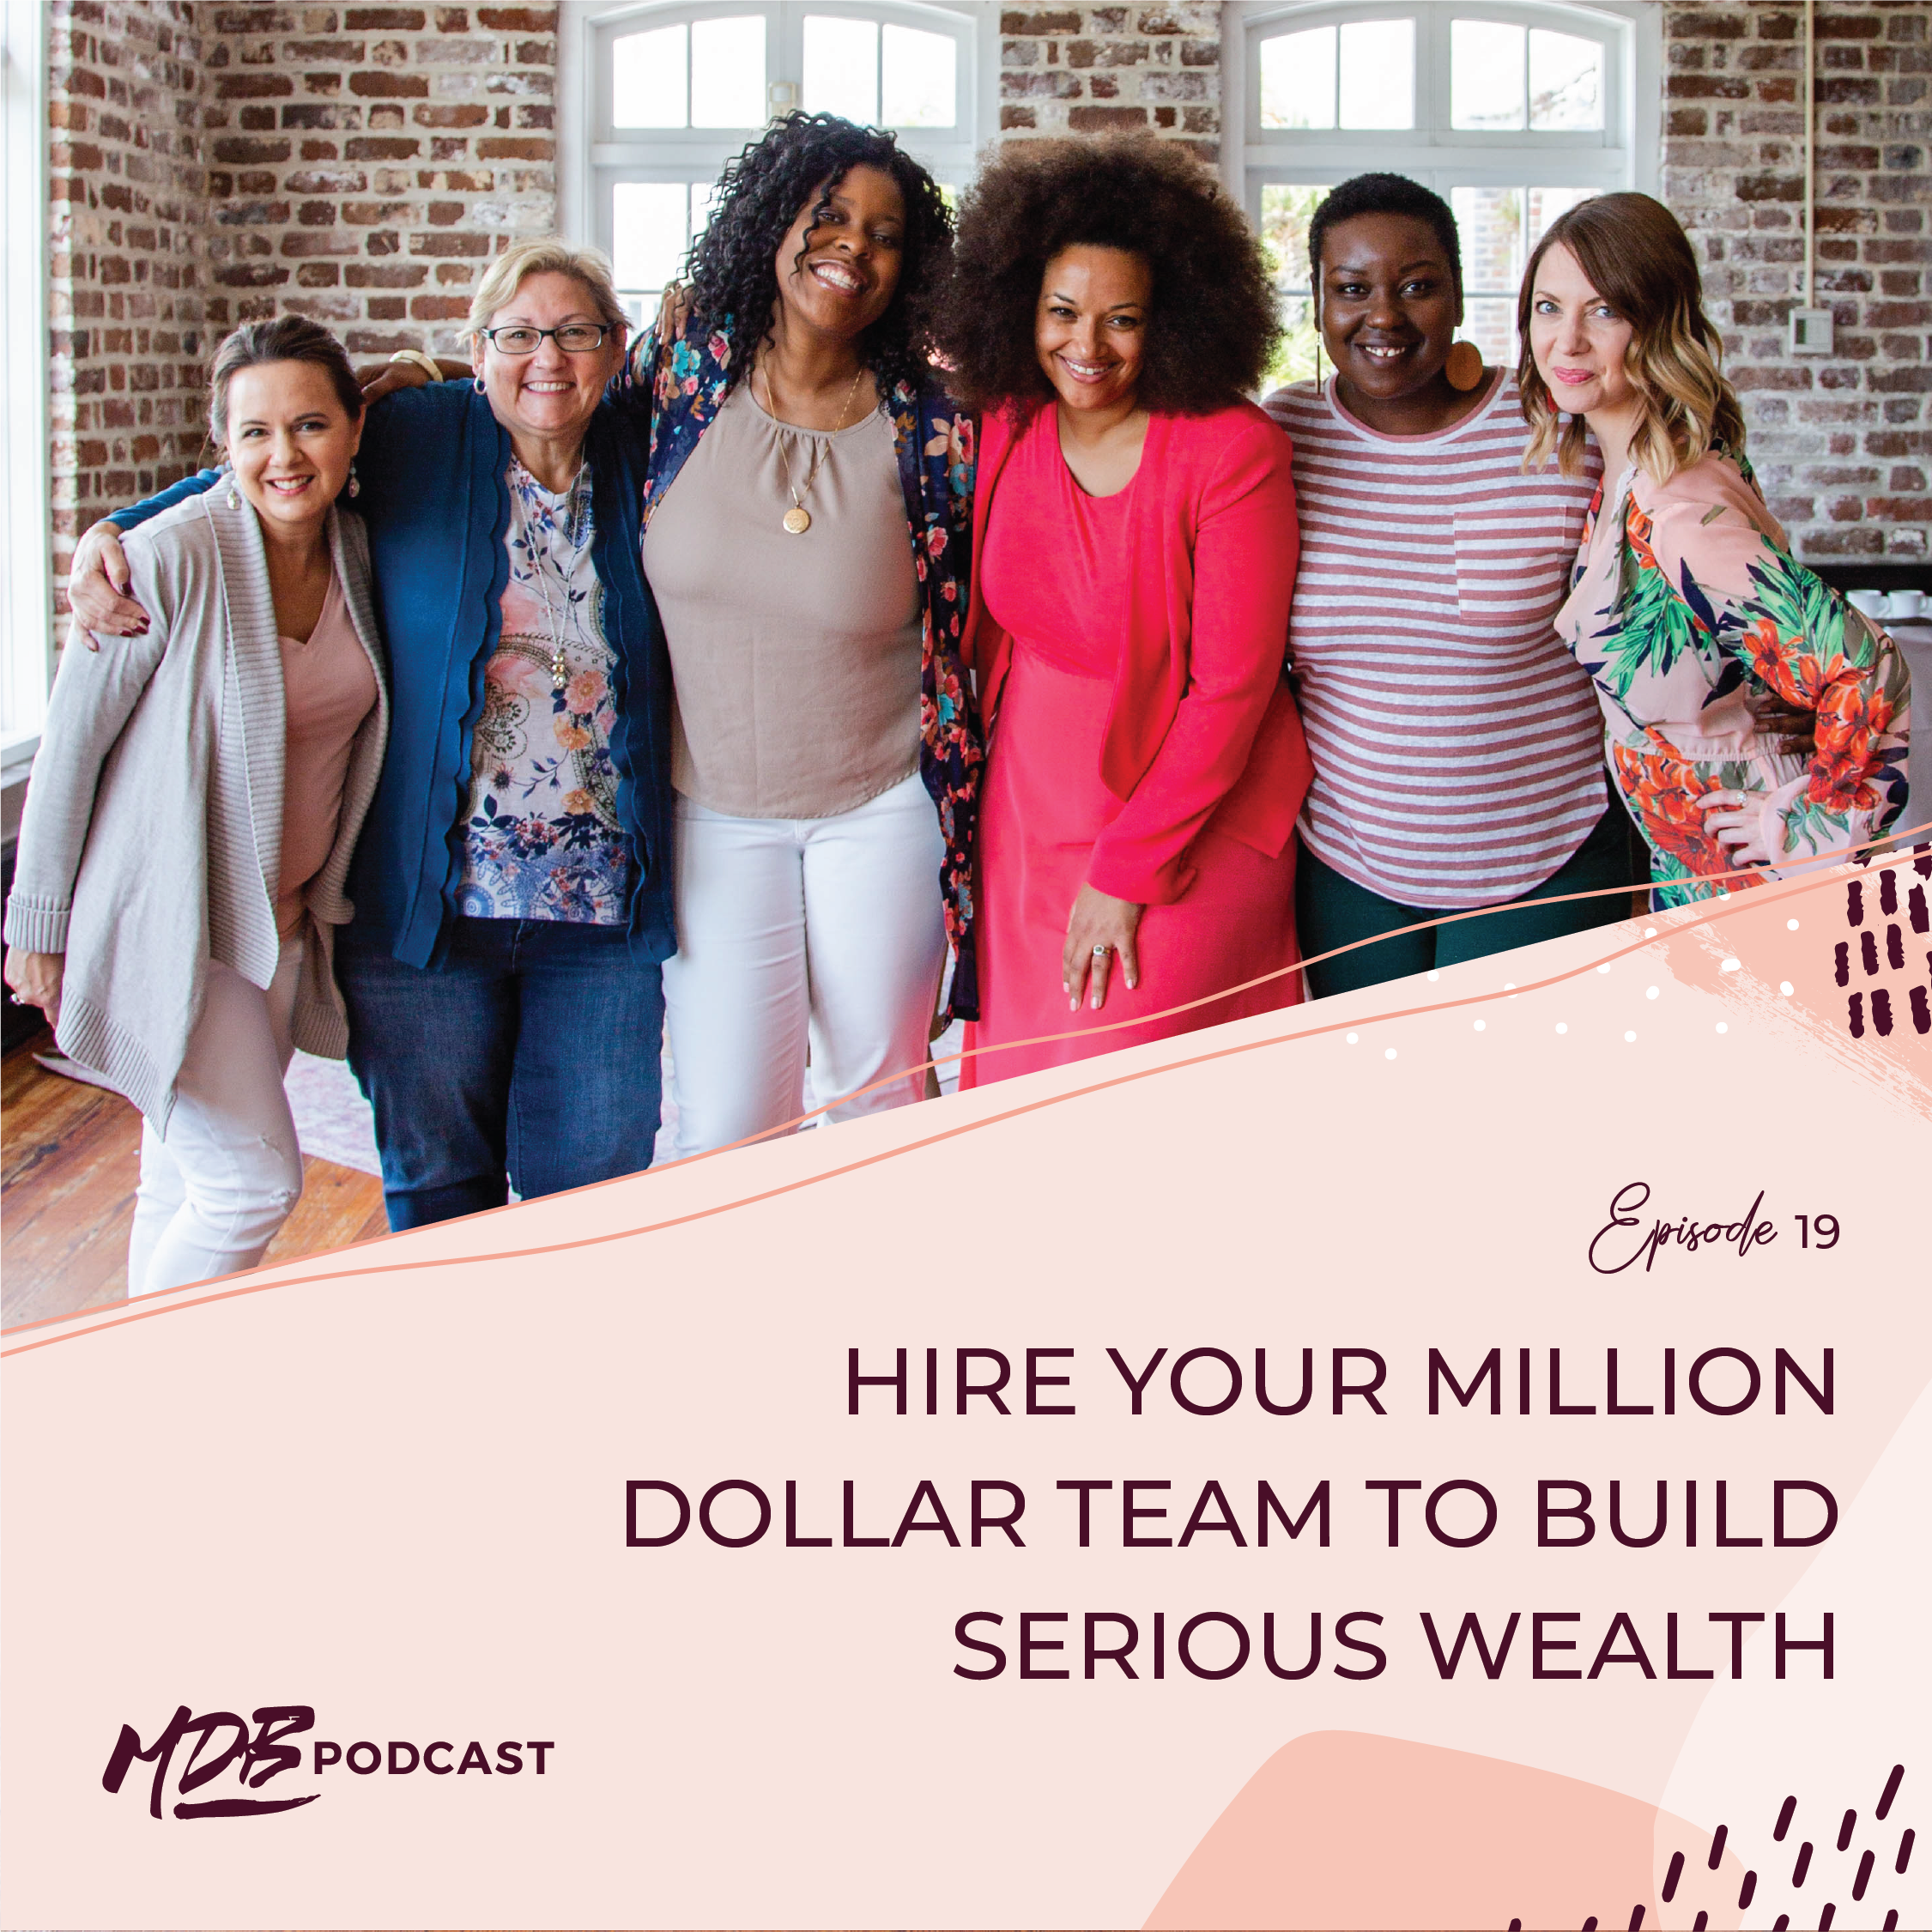 019 Hire Your Million Dollar Team to Build Serious Wealth